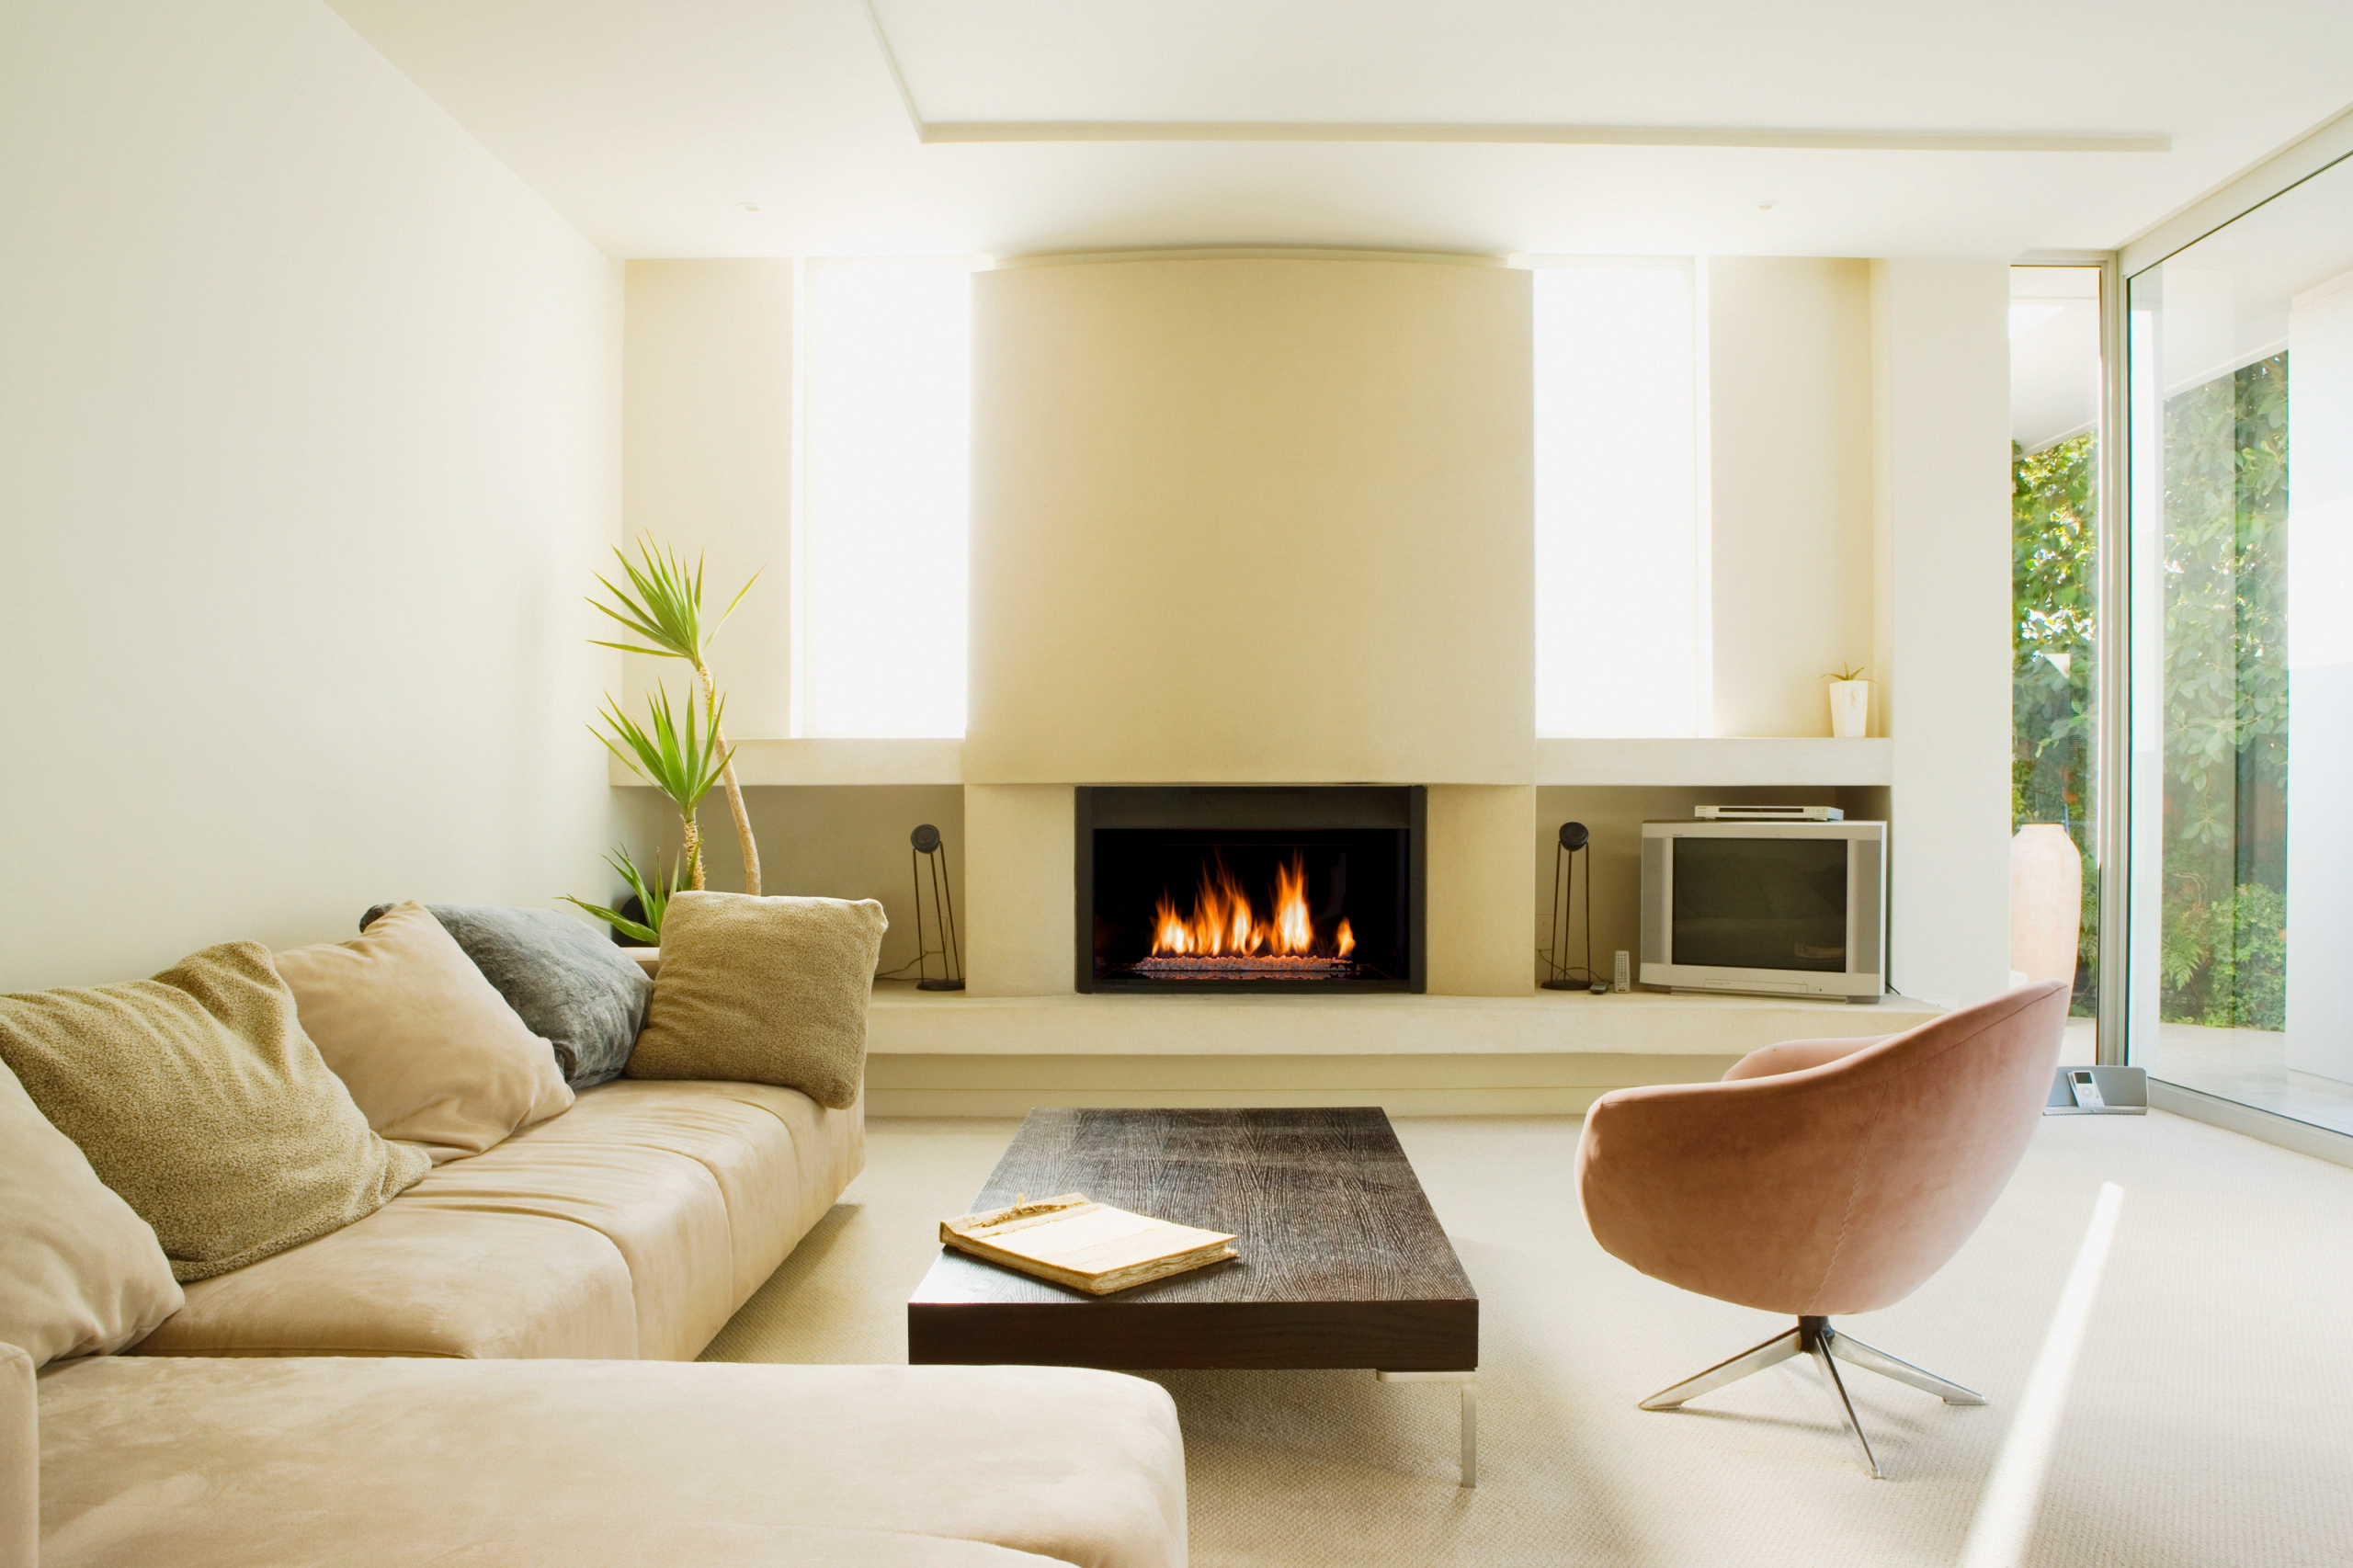 Gas fireplace in a modern home